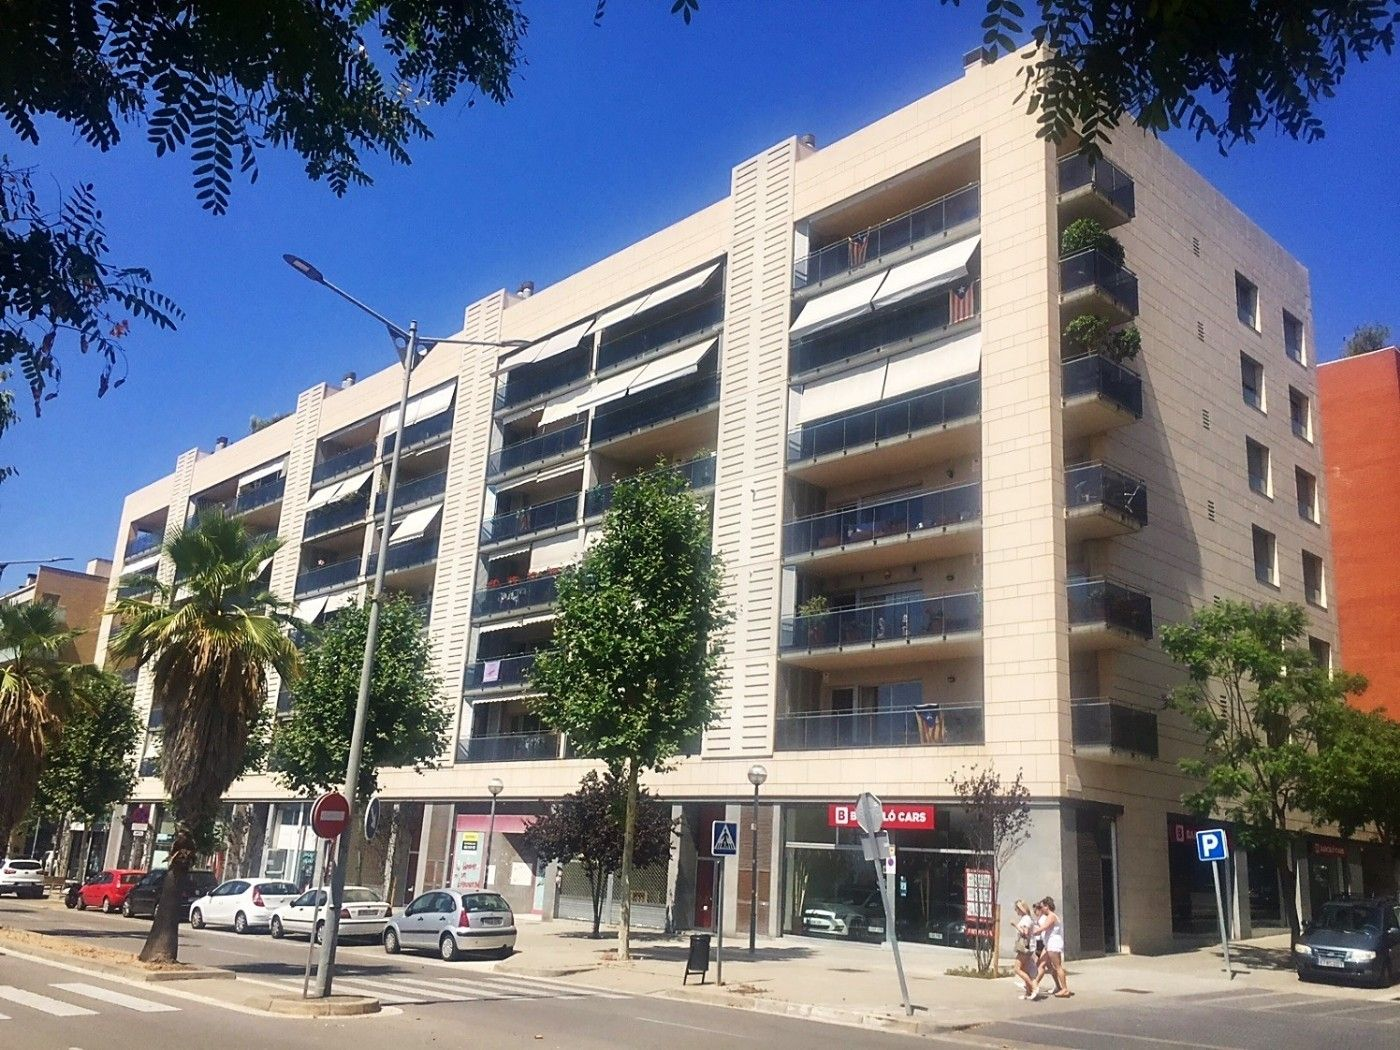 Alquiler Local Comercial  Ronda mossen jacint verdaguer. Local en parc central mataro